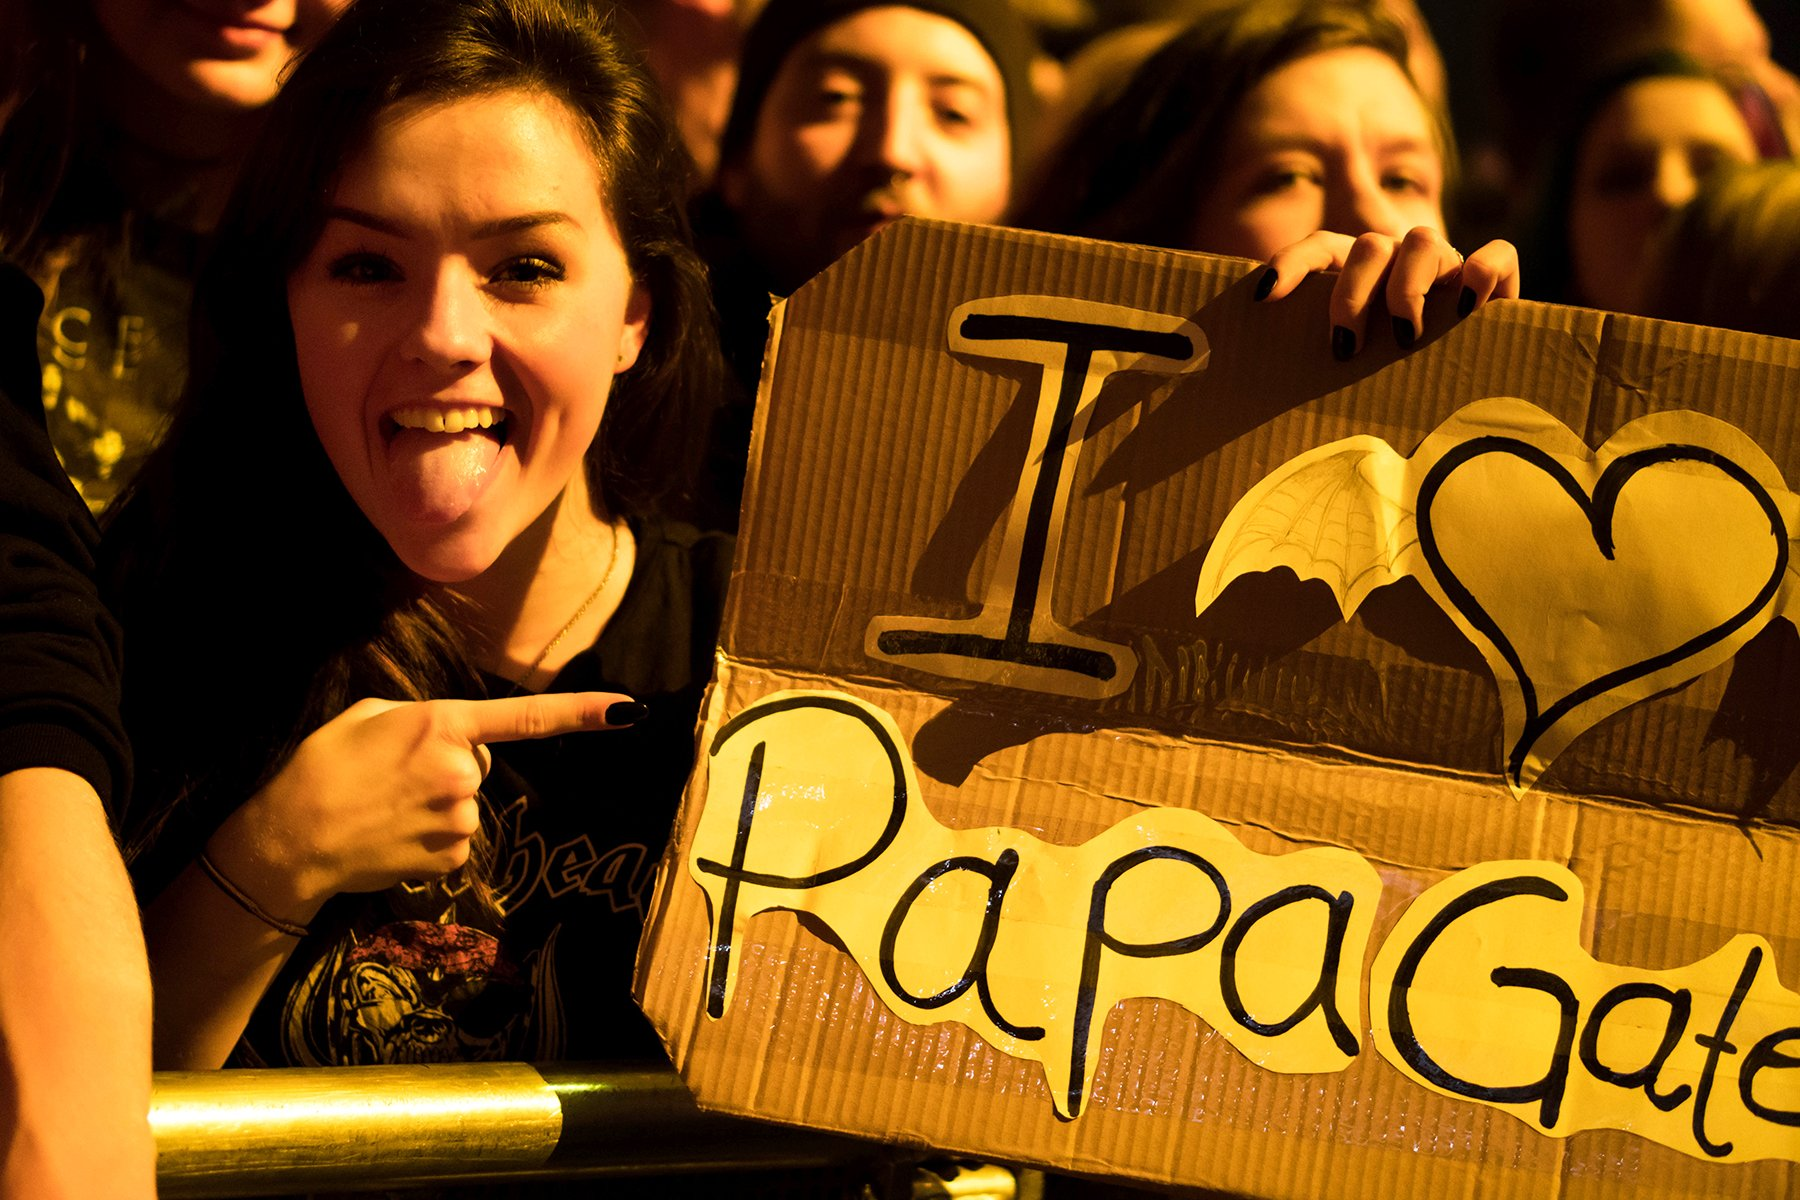 Who do you love? Happy Valentines Day. #papagates #thestageworldtour ��: @rafacore https://t.co/XYBDjf4als